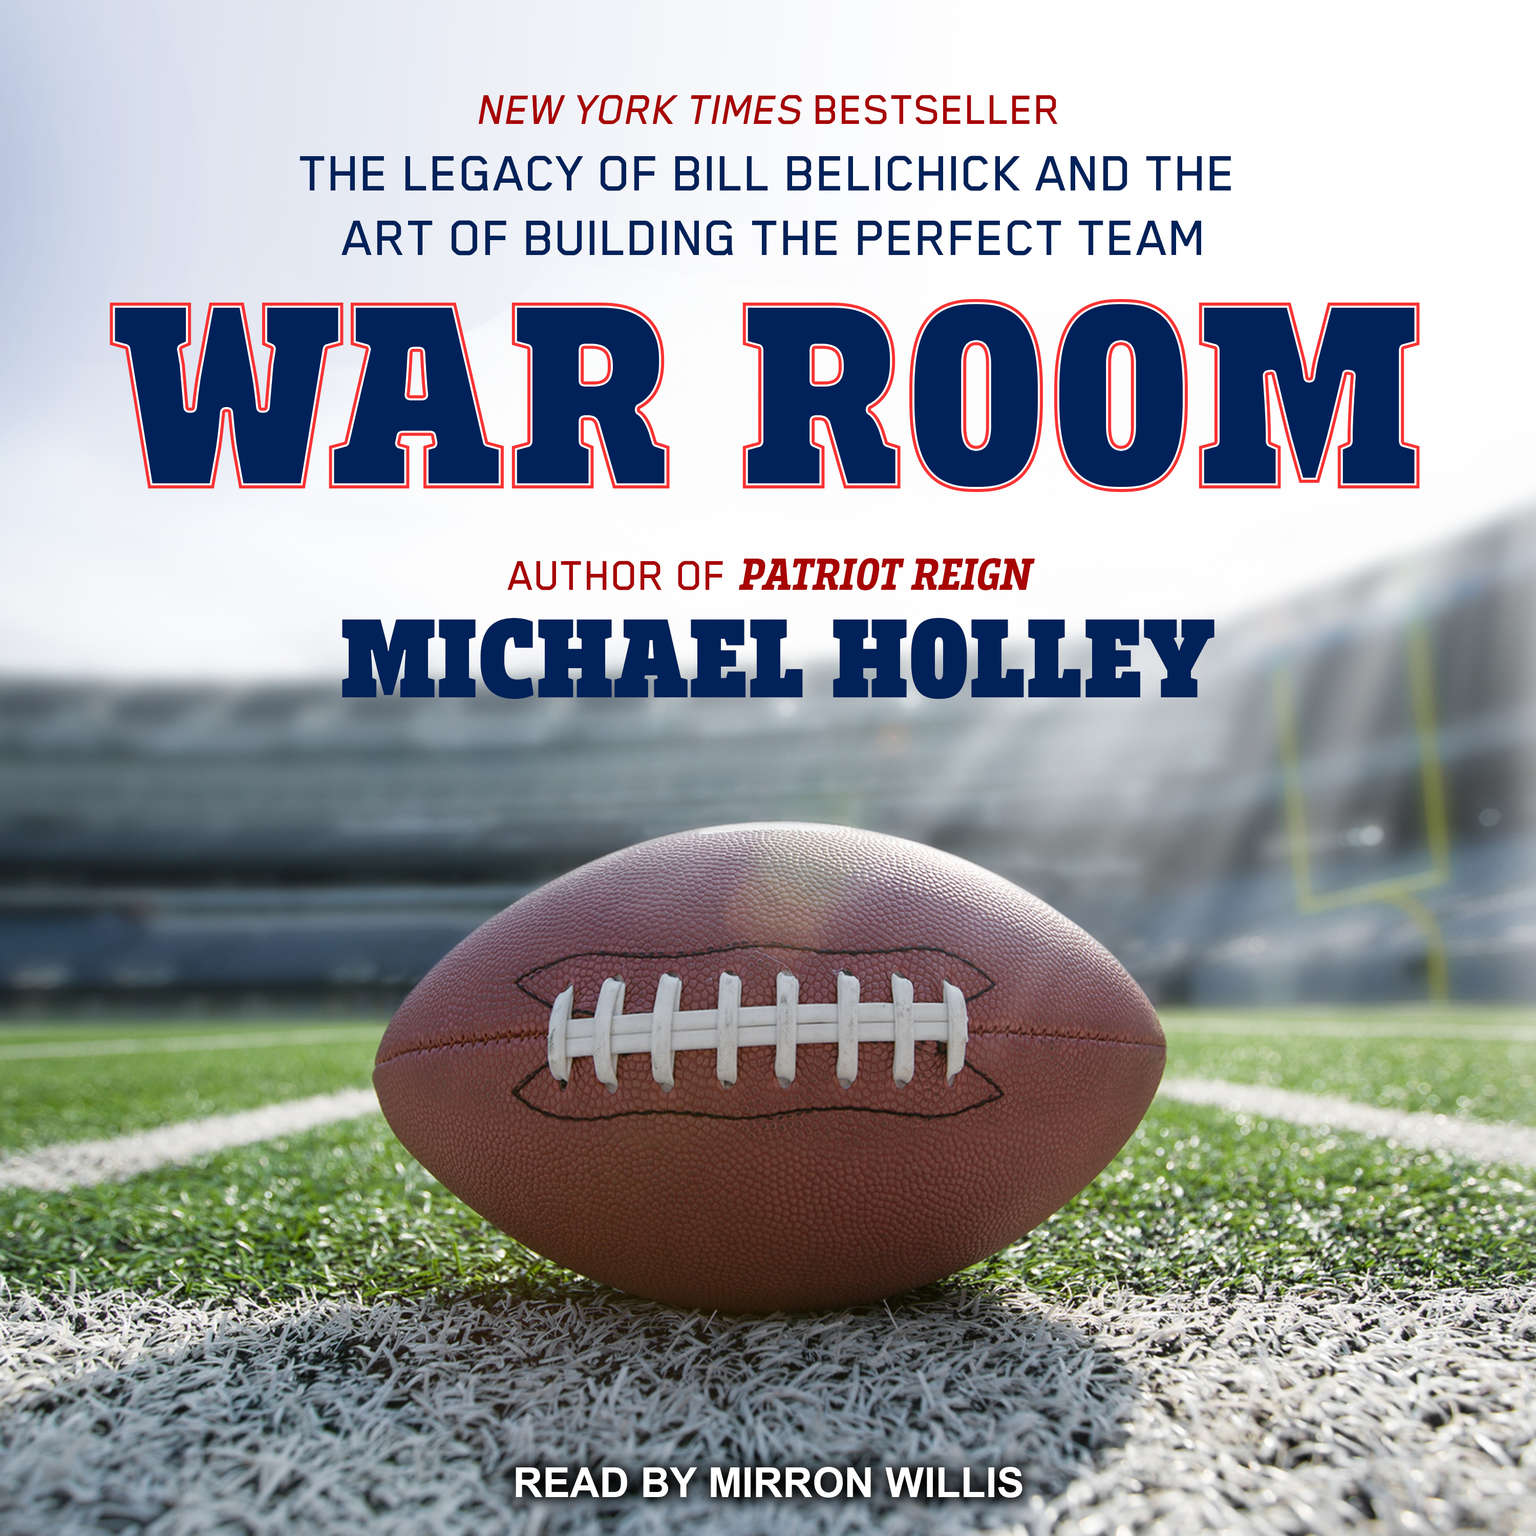 War Room: The Legacy of Bill Belichick and the Art of Building the Perfect Team Audiobook, by Michael Holley